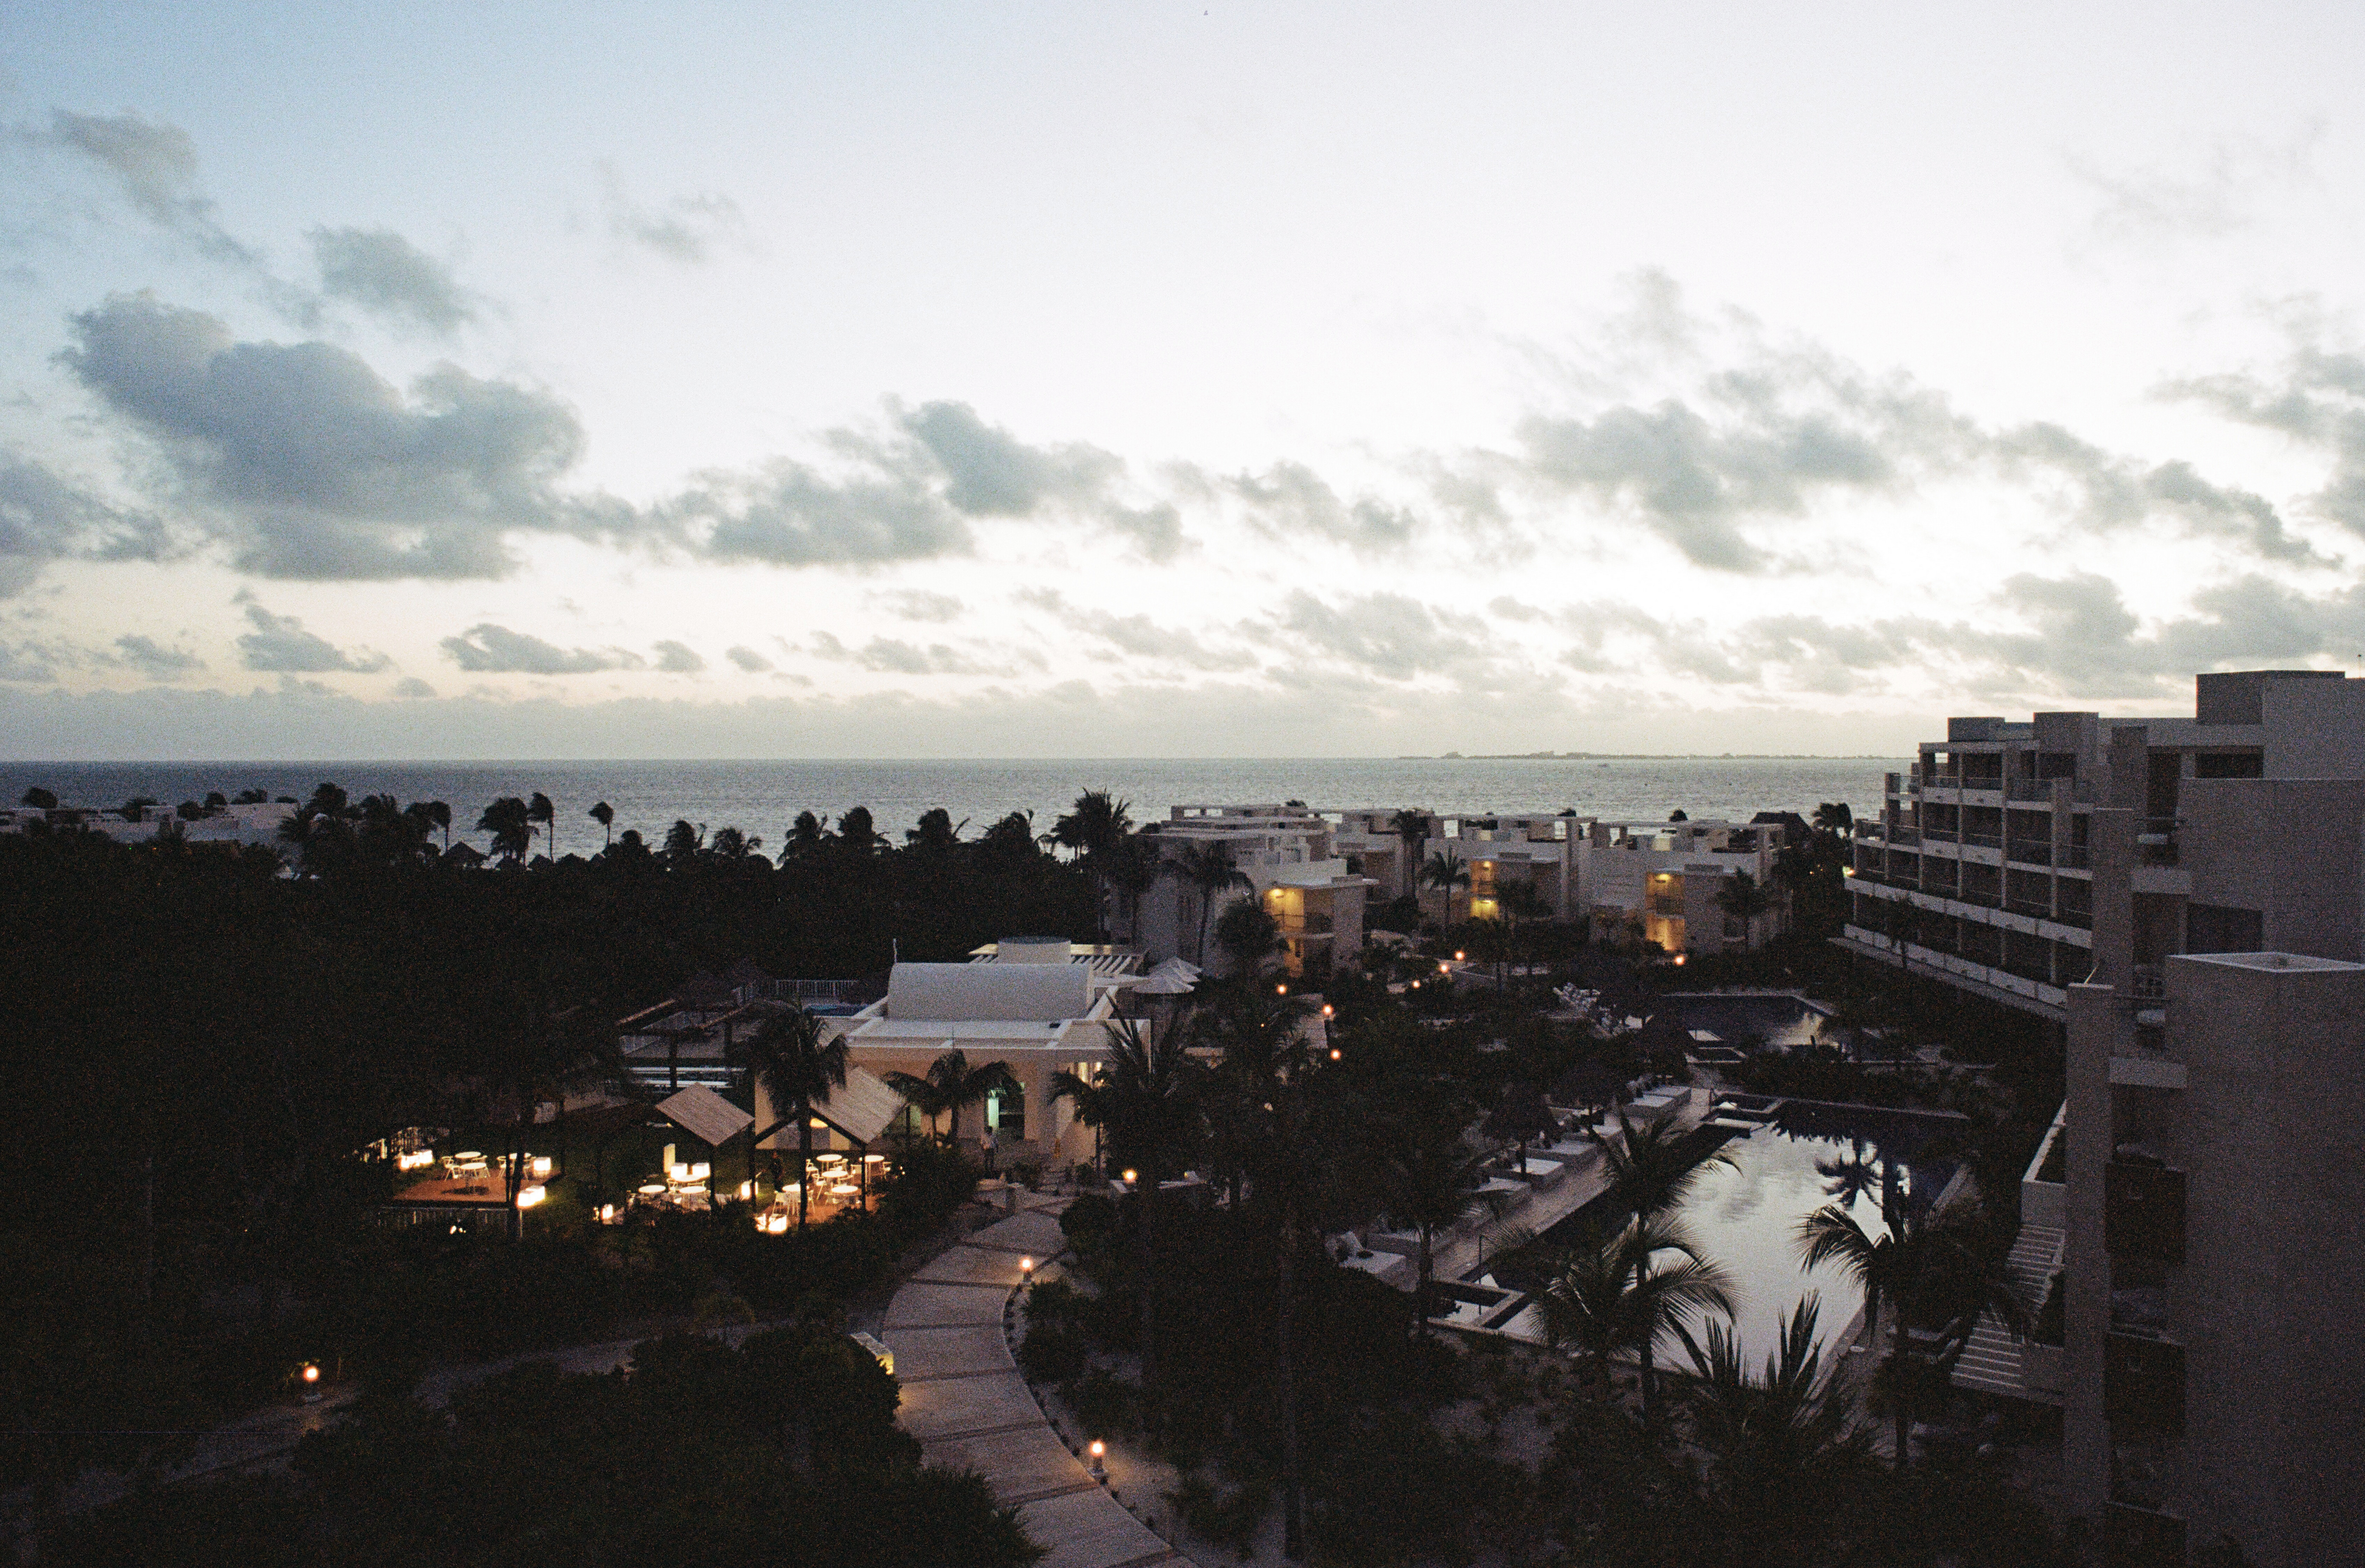 The view from our balcony at the Beloved Playa Mujeres resort in Cancun, Mexico.